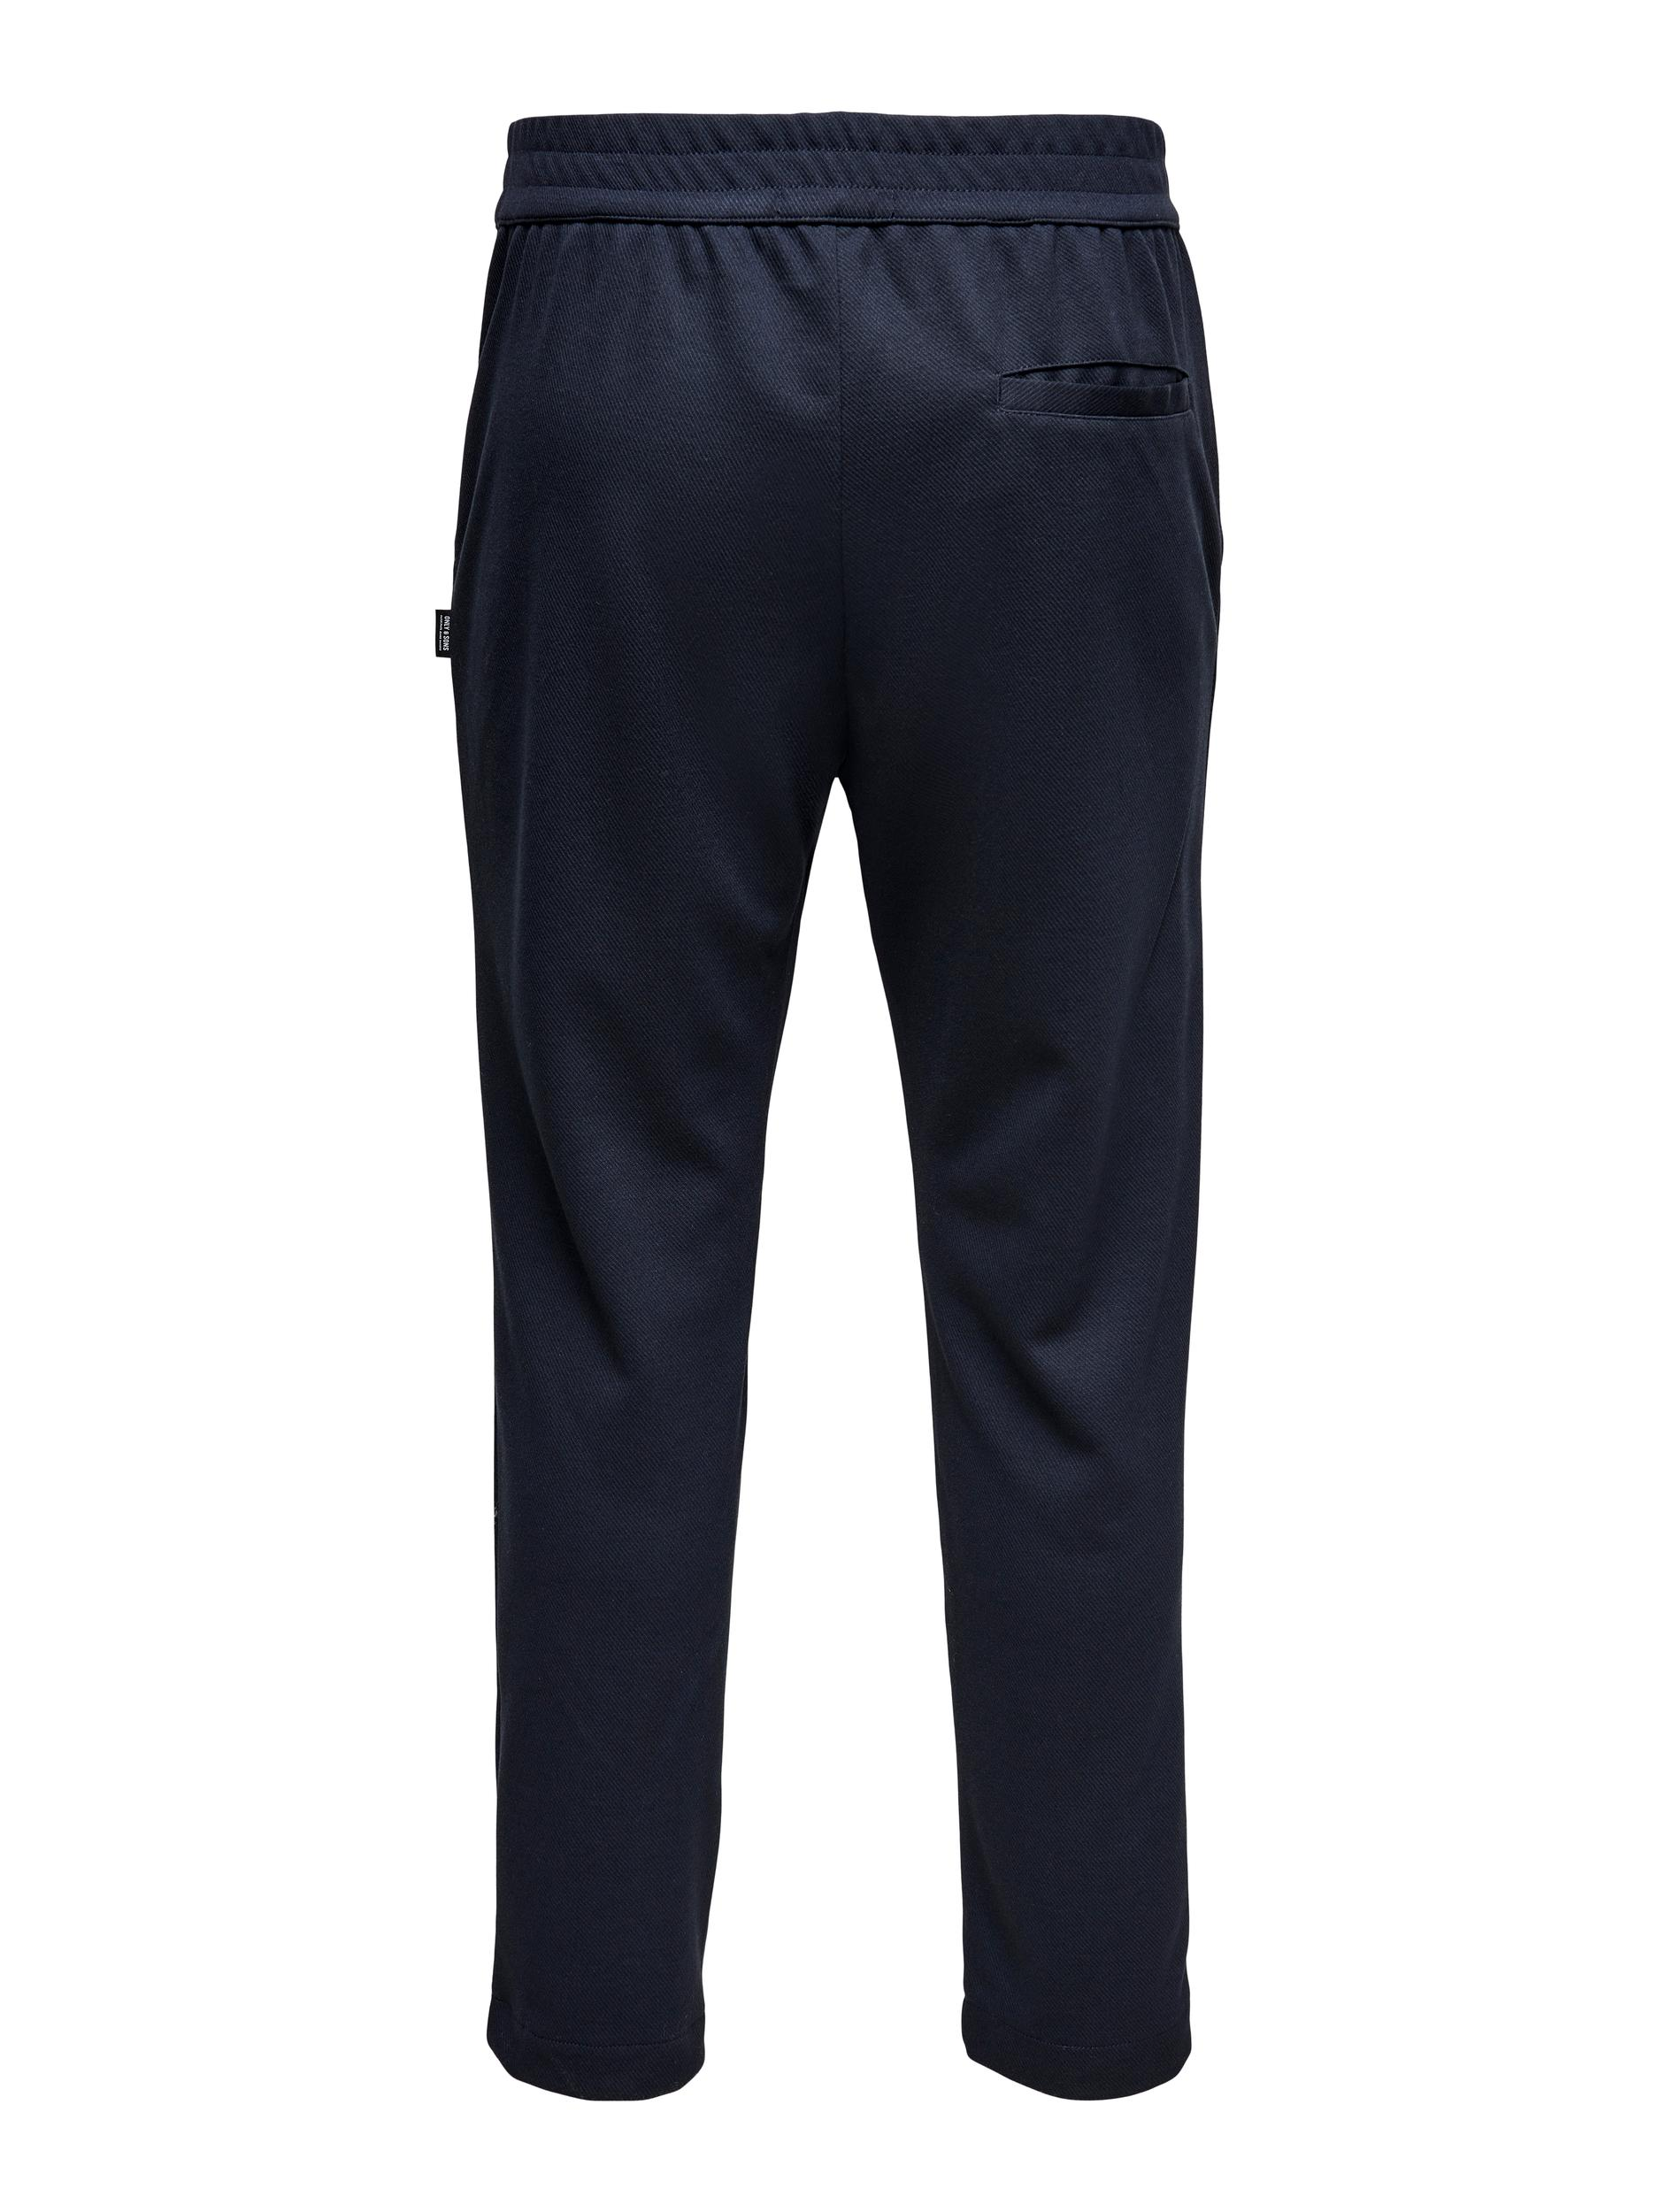 Only and Sons Rover Joggingbukser, Dark navy, X-large